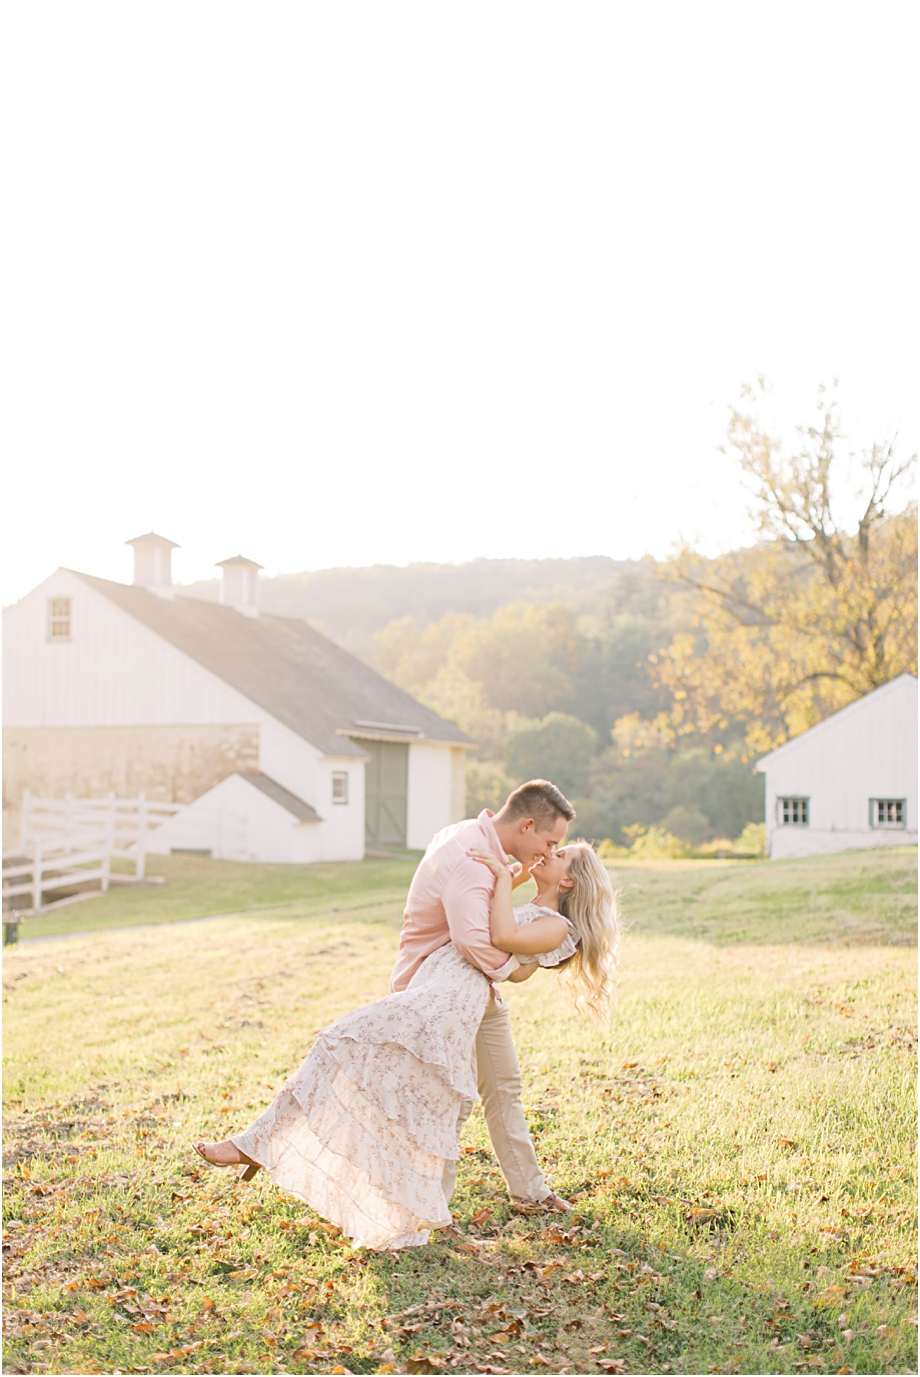 golden hour engagement session at valley forge | sarah canning photography